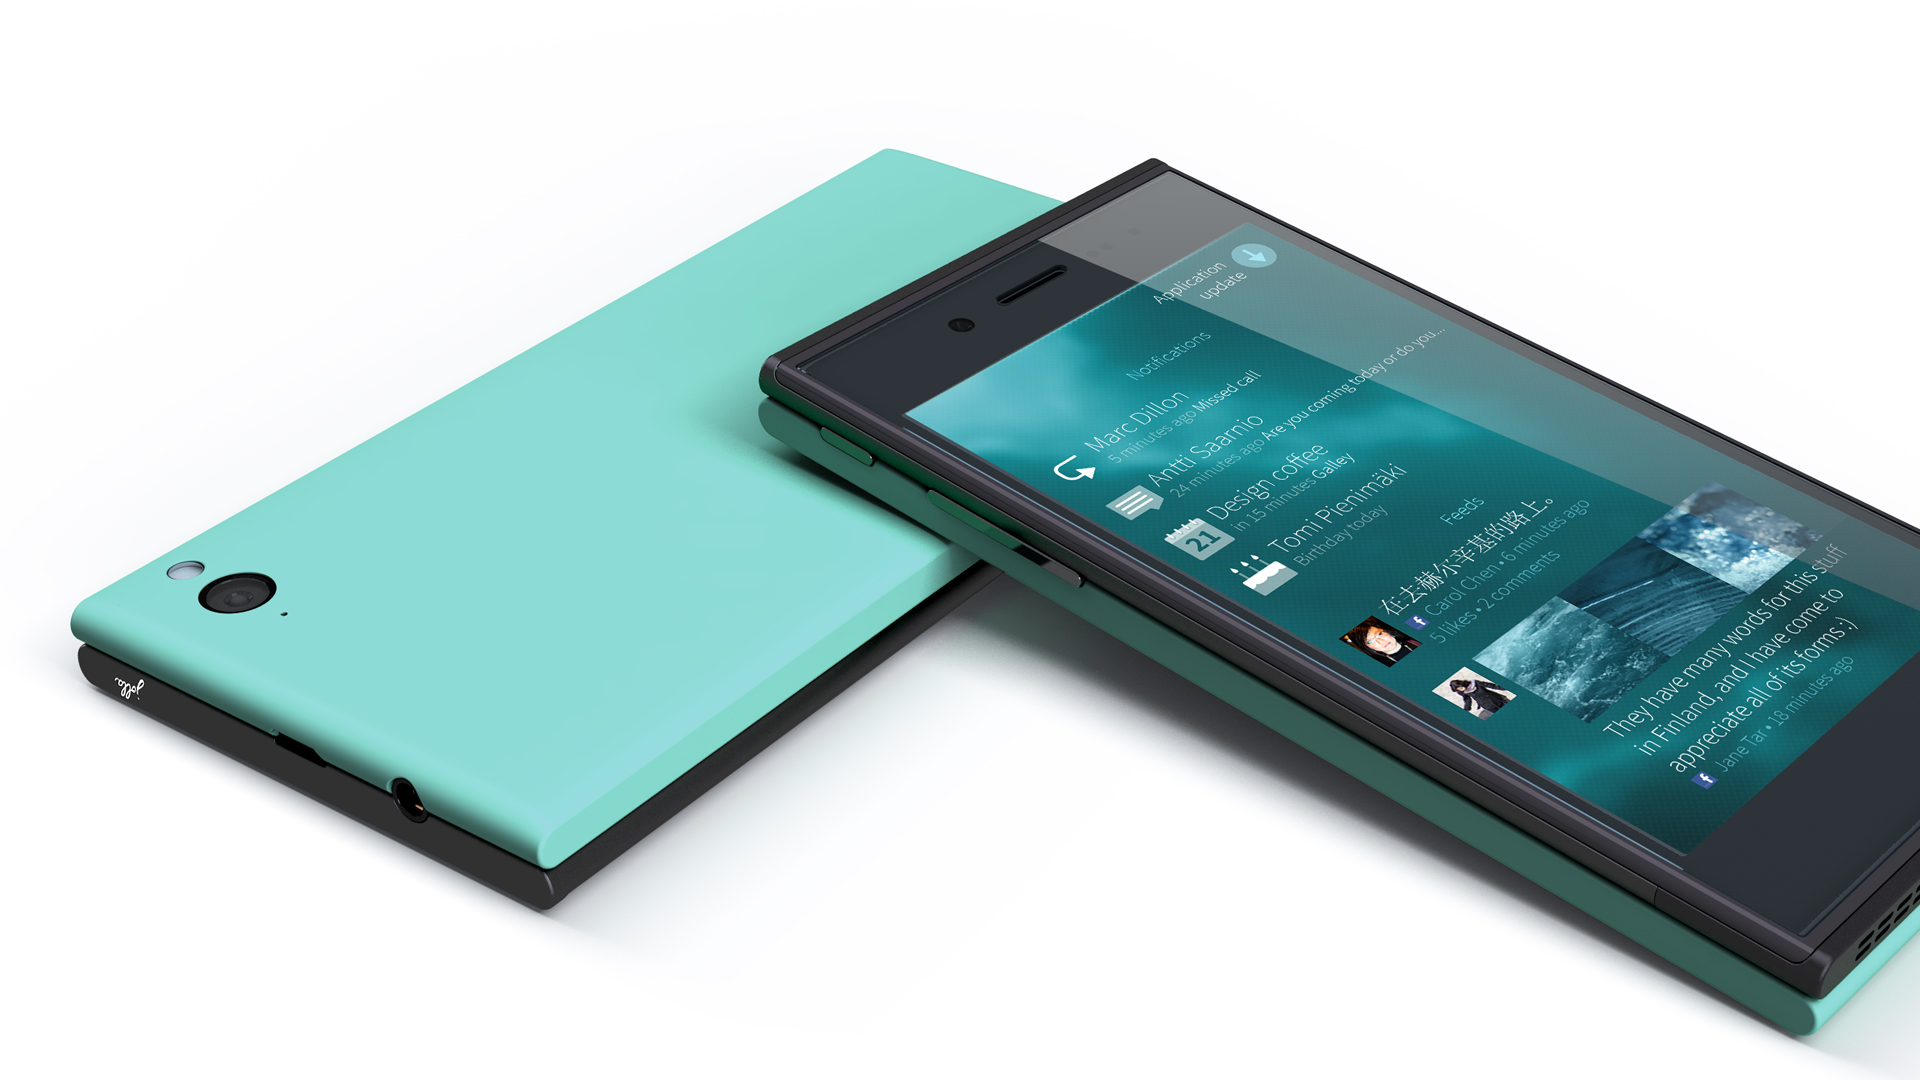 The Jolla Sailfish OS. Source: Press photo